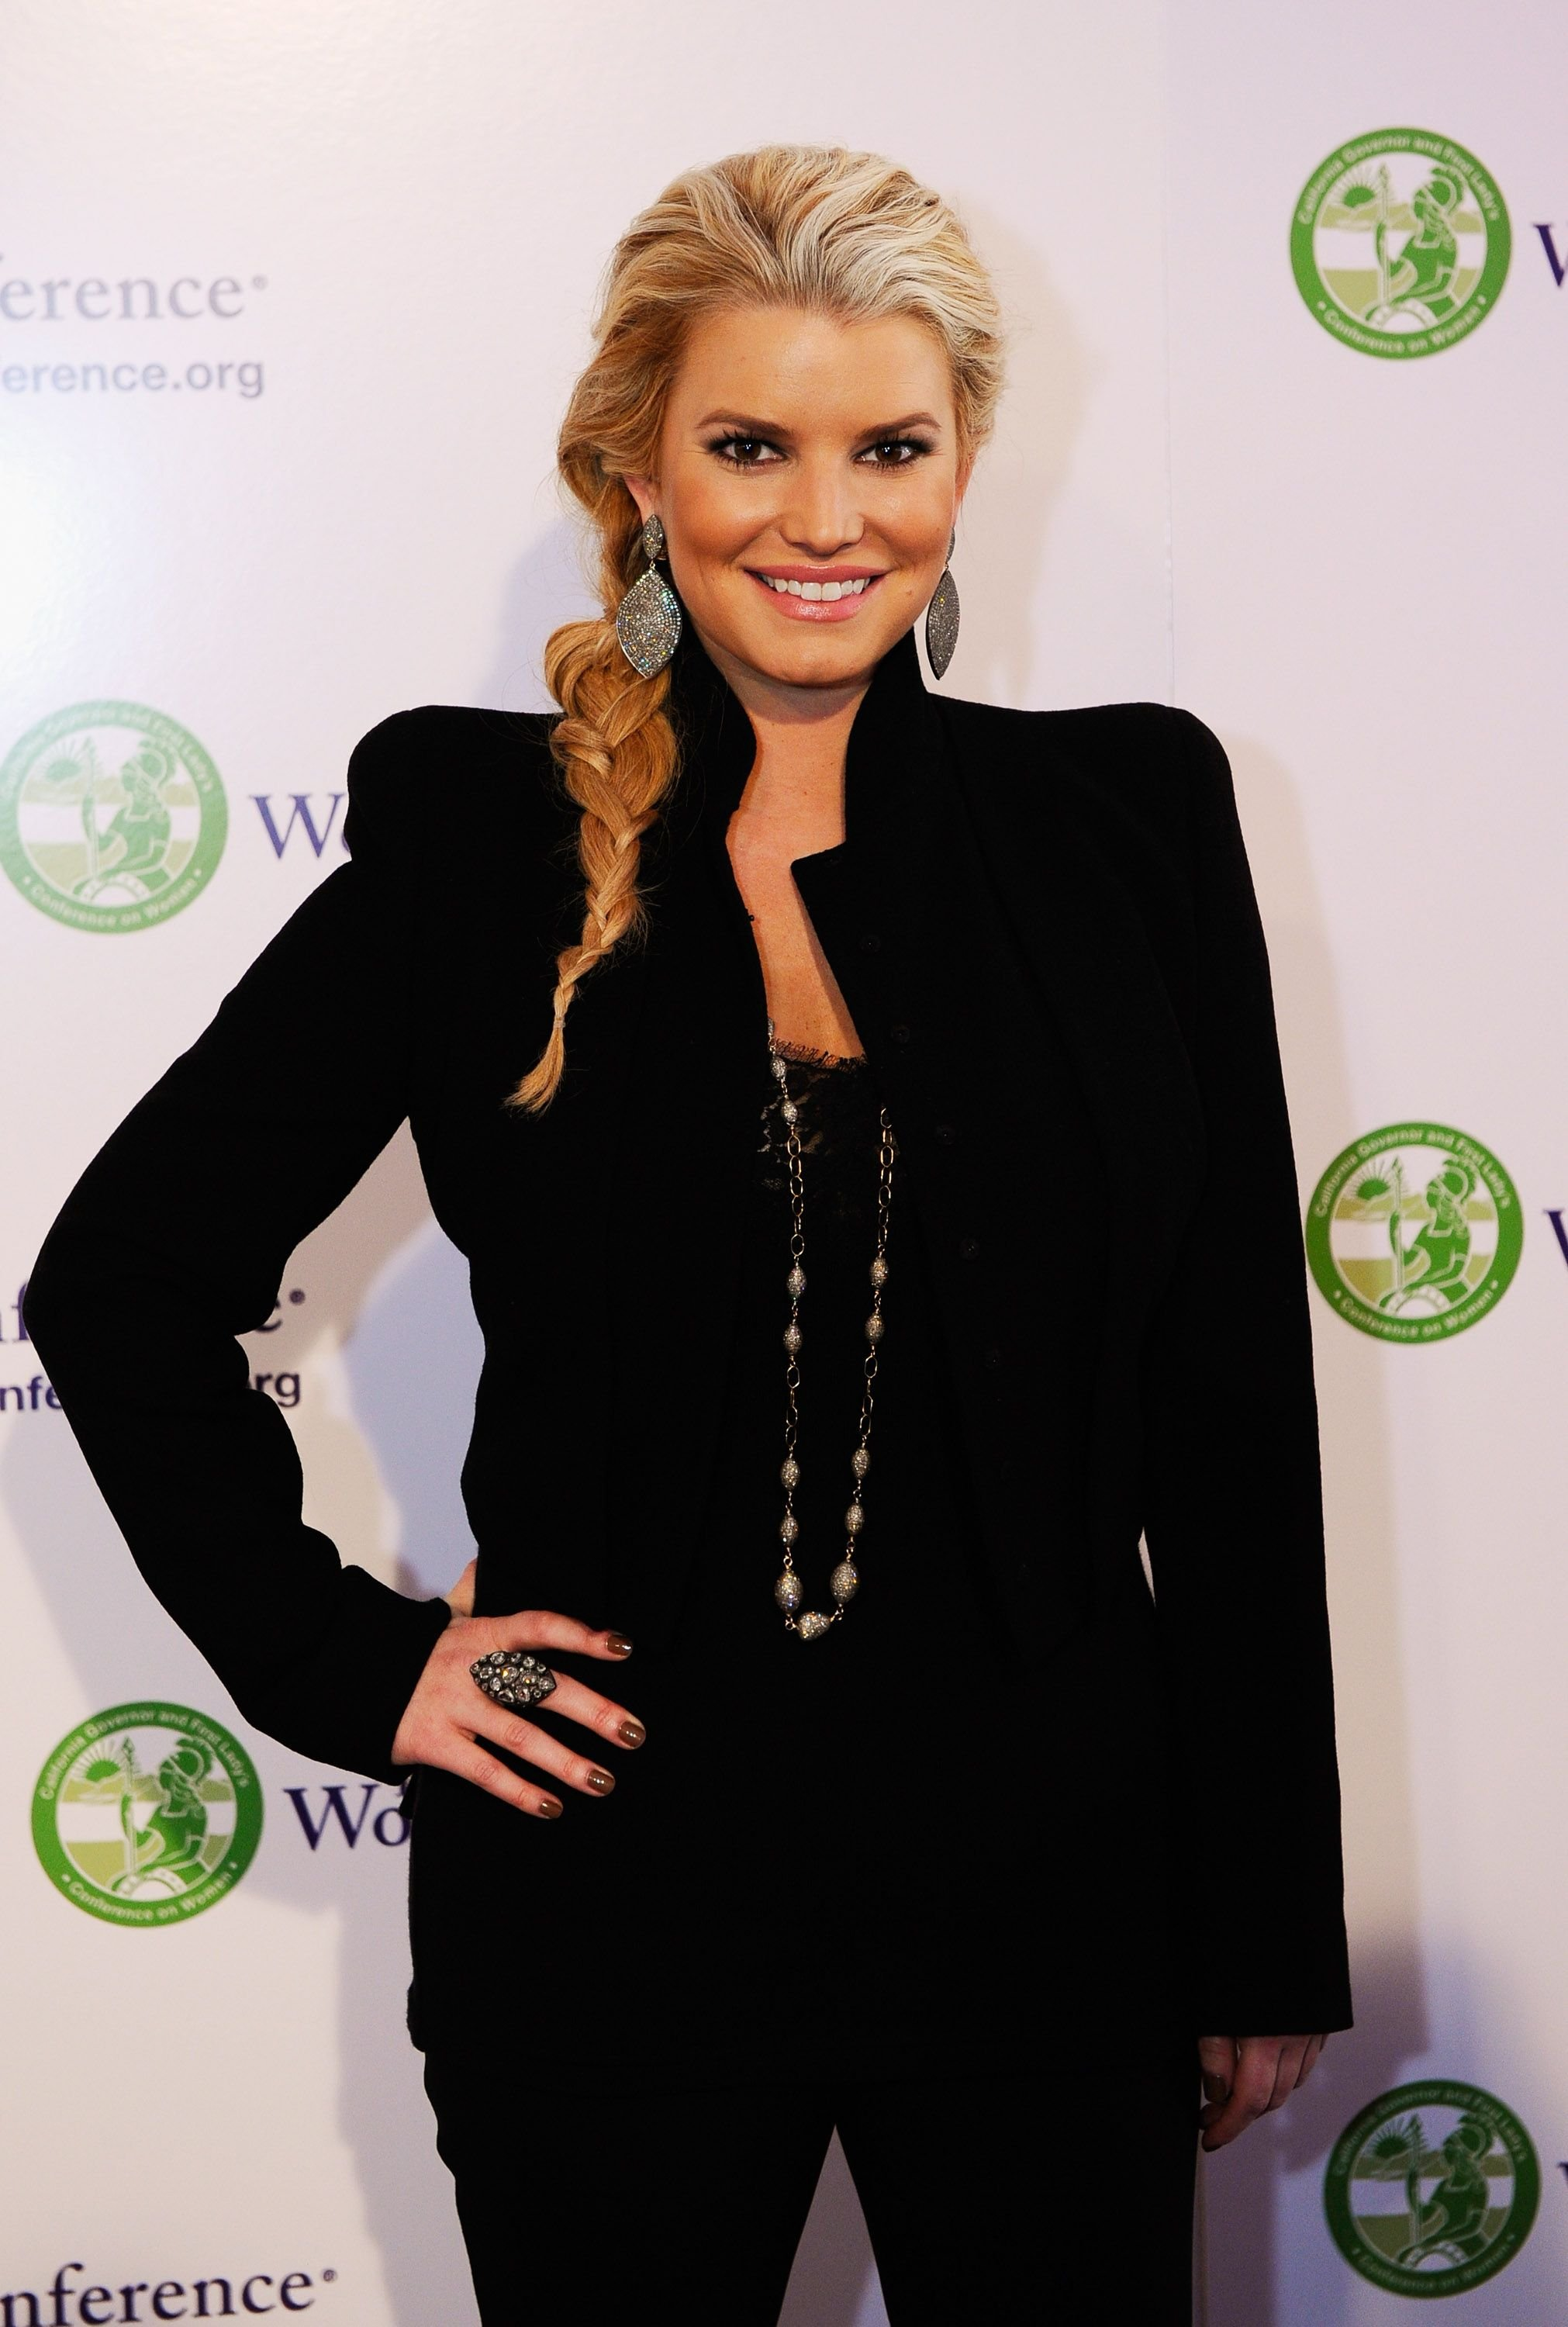 Jessica Simpson at California's first lady Maria Shriver's annual Women's Conference 2010 on October 26, 2010 in Long Beach, California.   Source: Getty Images